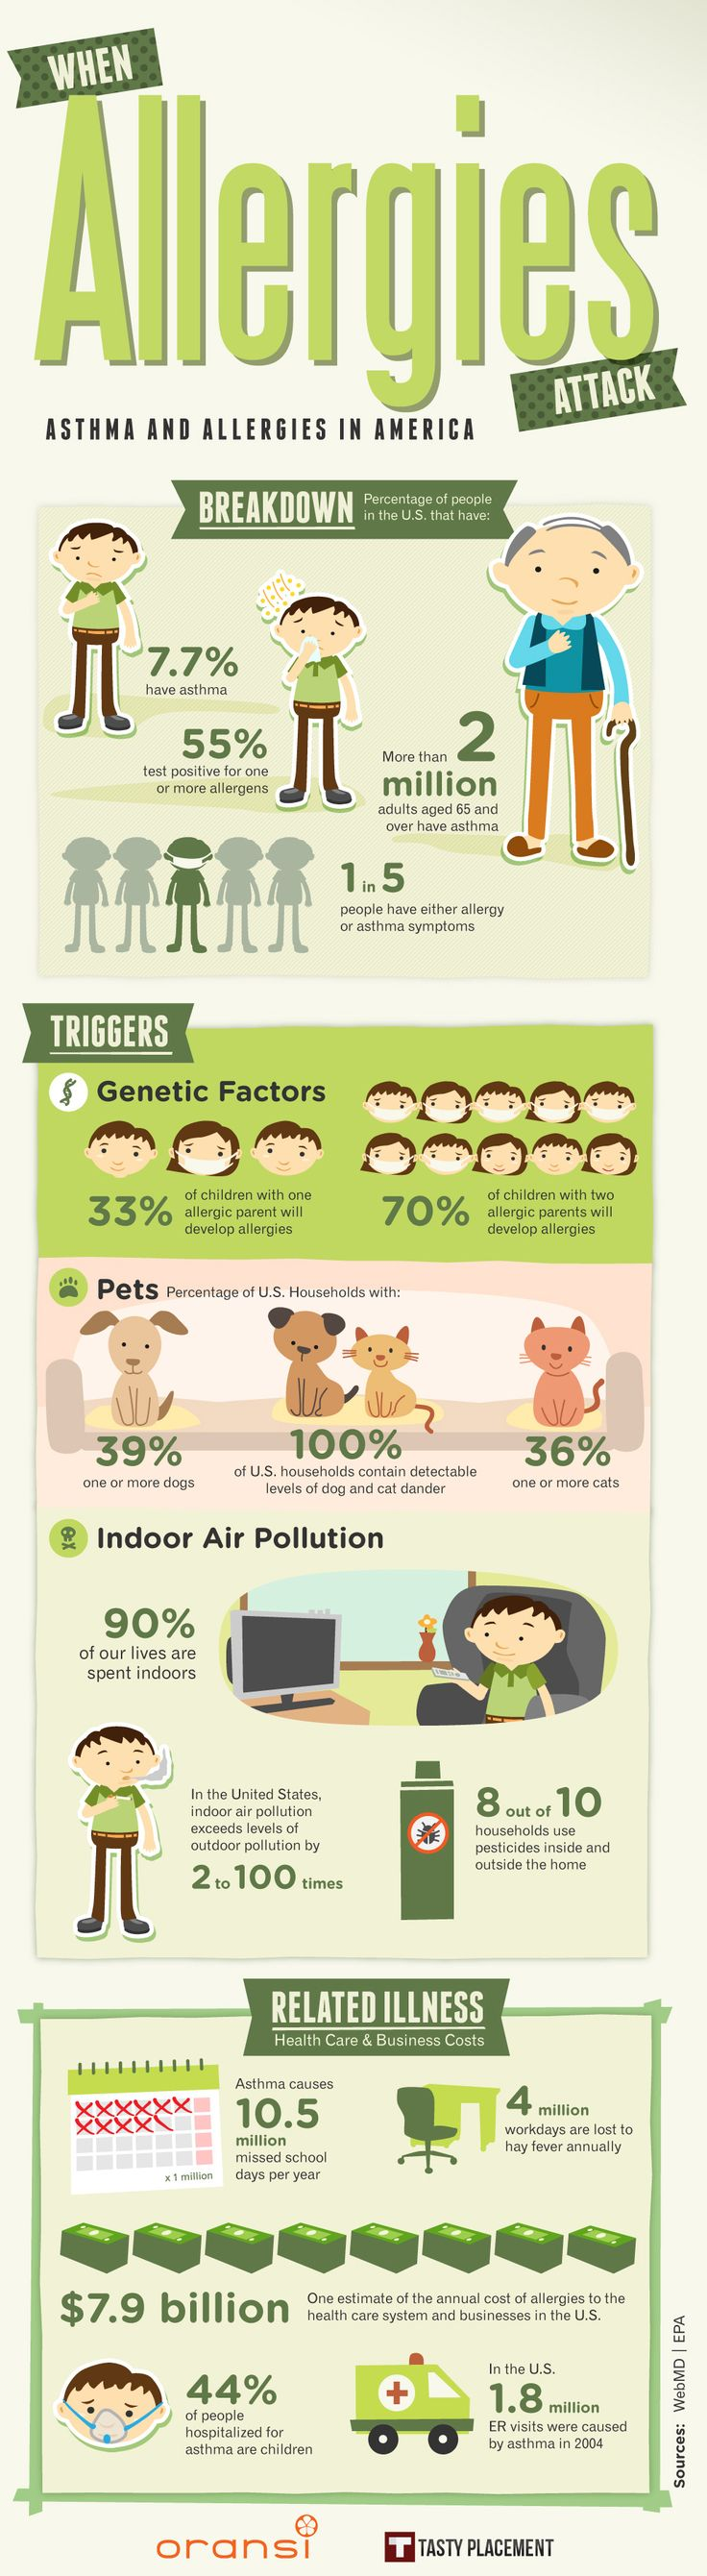 When Allergies Attack Infographic